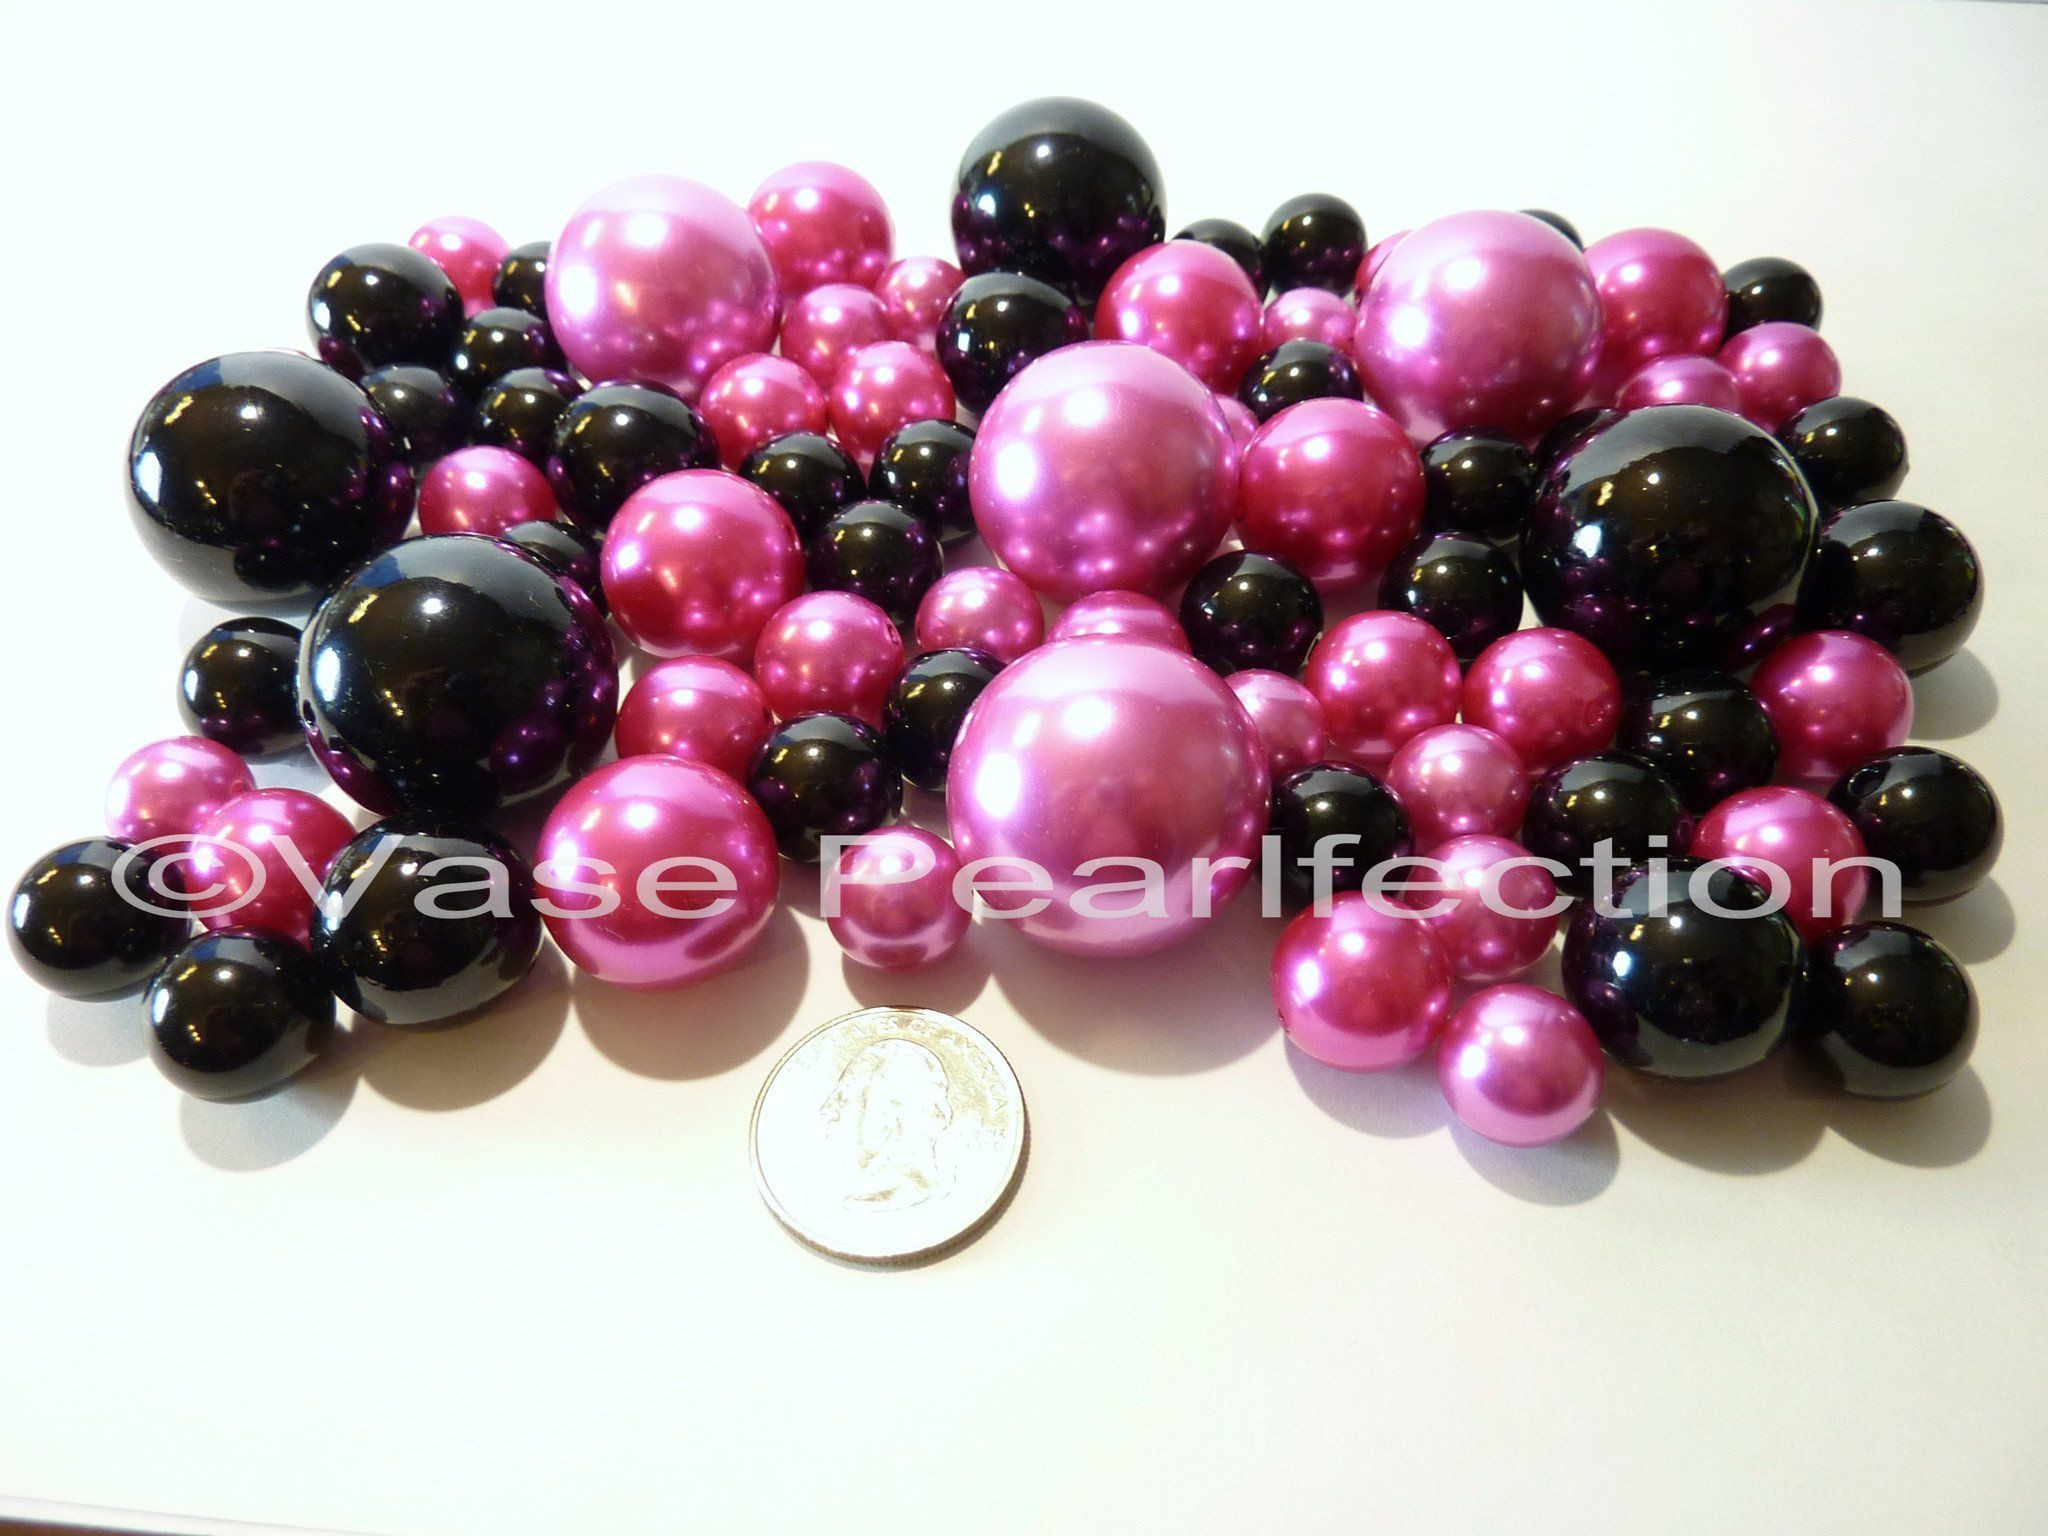 pink pearl vase fillers of all red pearls jumbo assorted sizes vase fillers for dec inside valentine hot pink black pearls jumbo assorted sizes vase fillers for decorating centerpieces